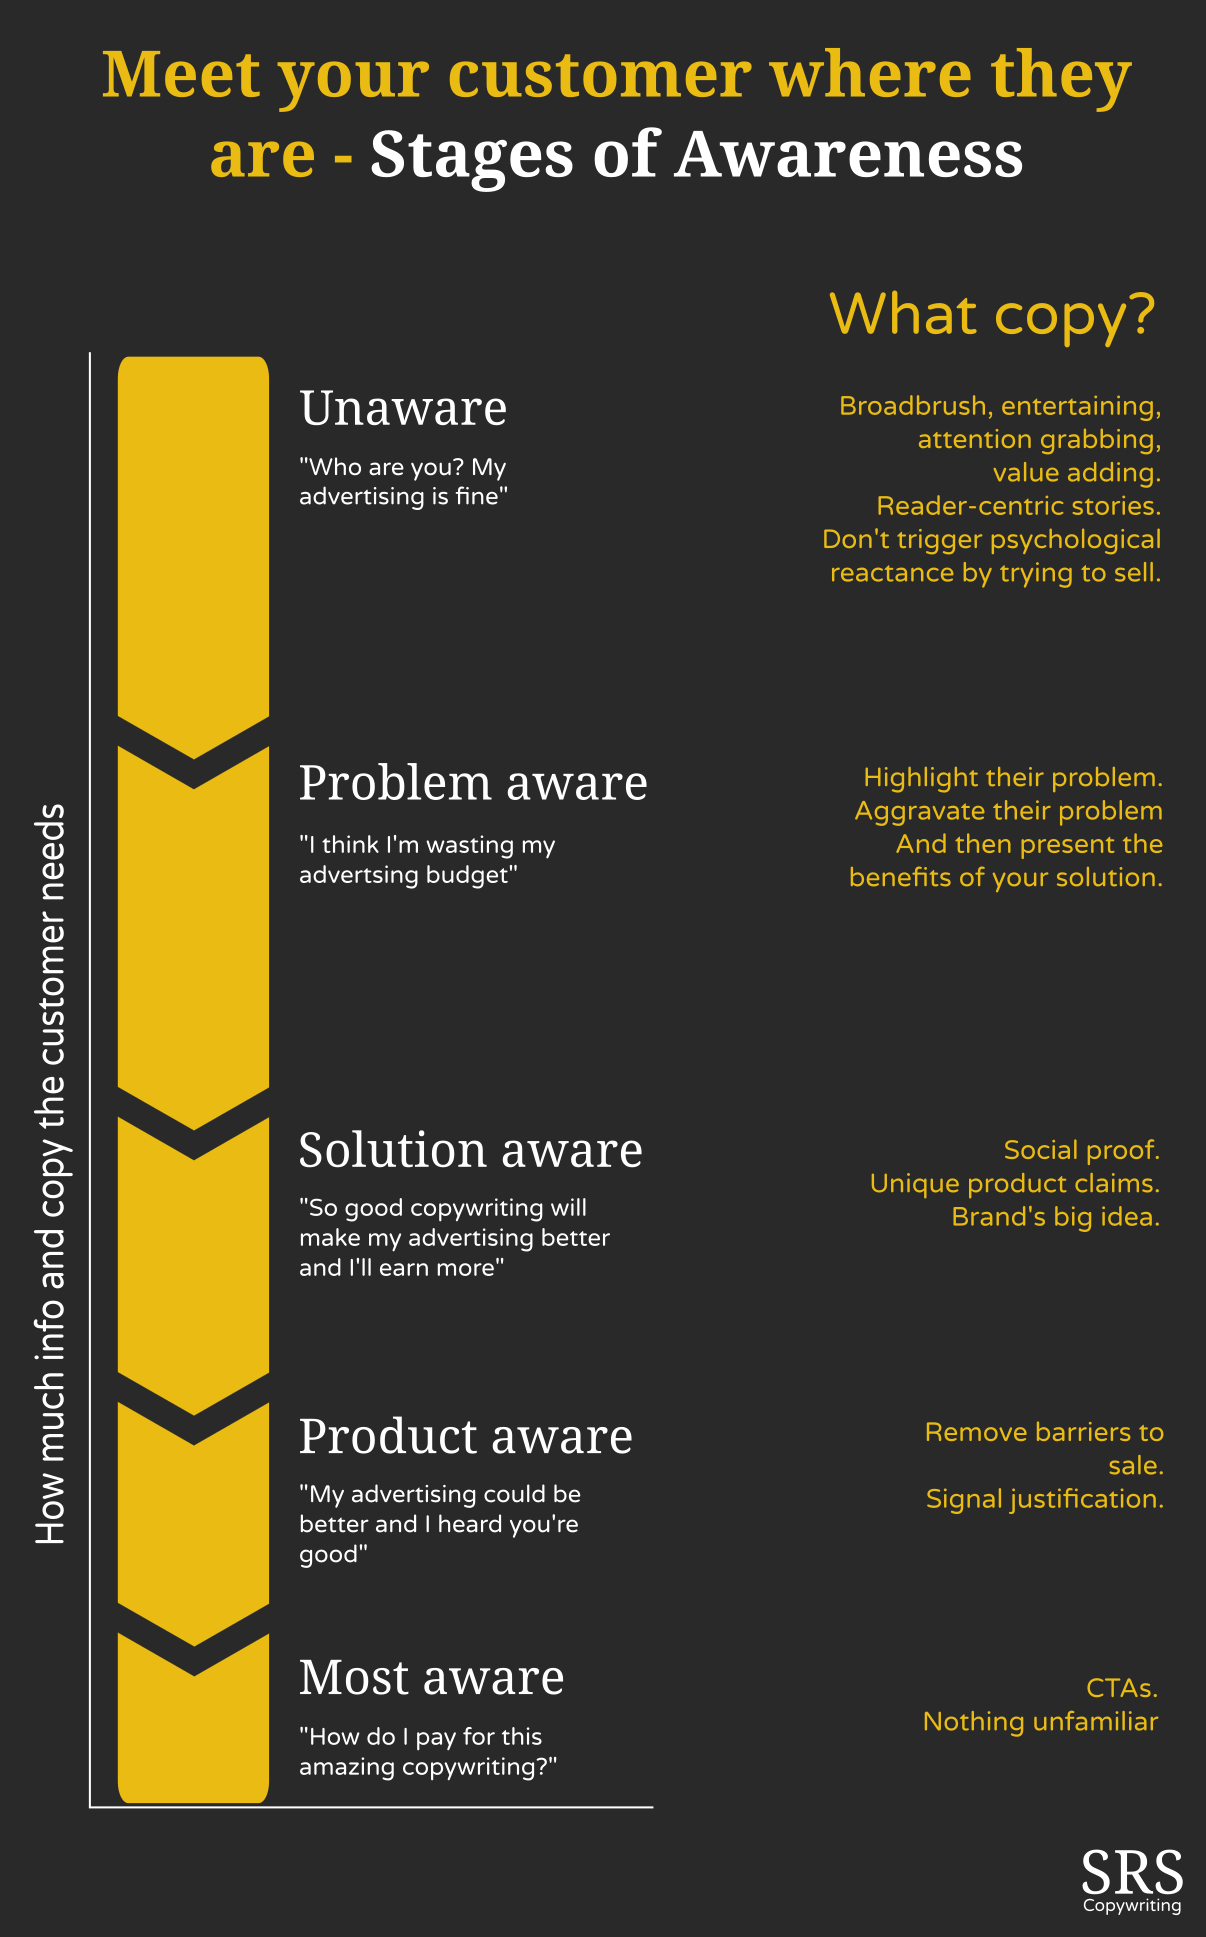 direct response copywriting and stages of awareness